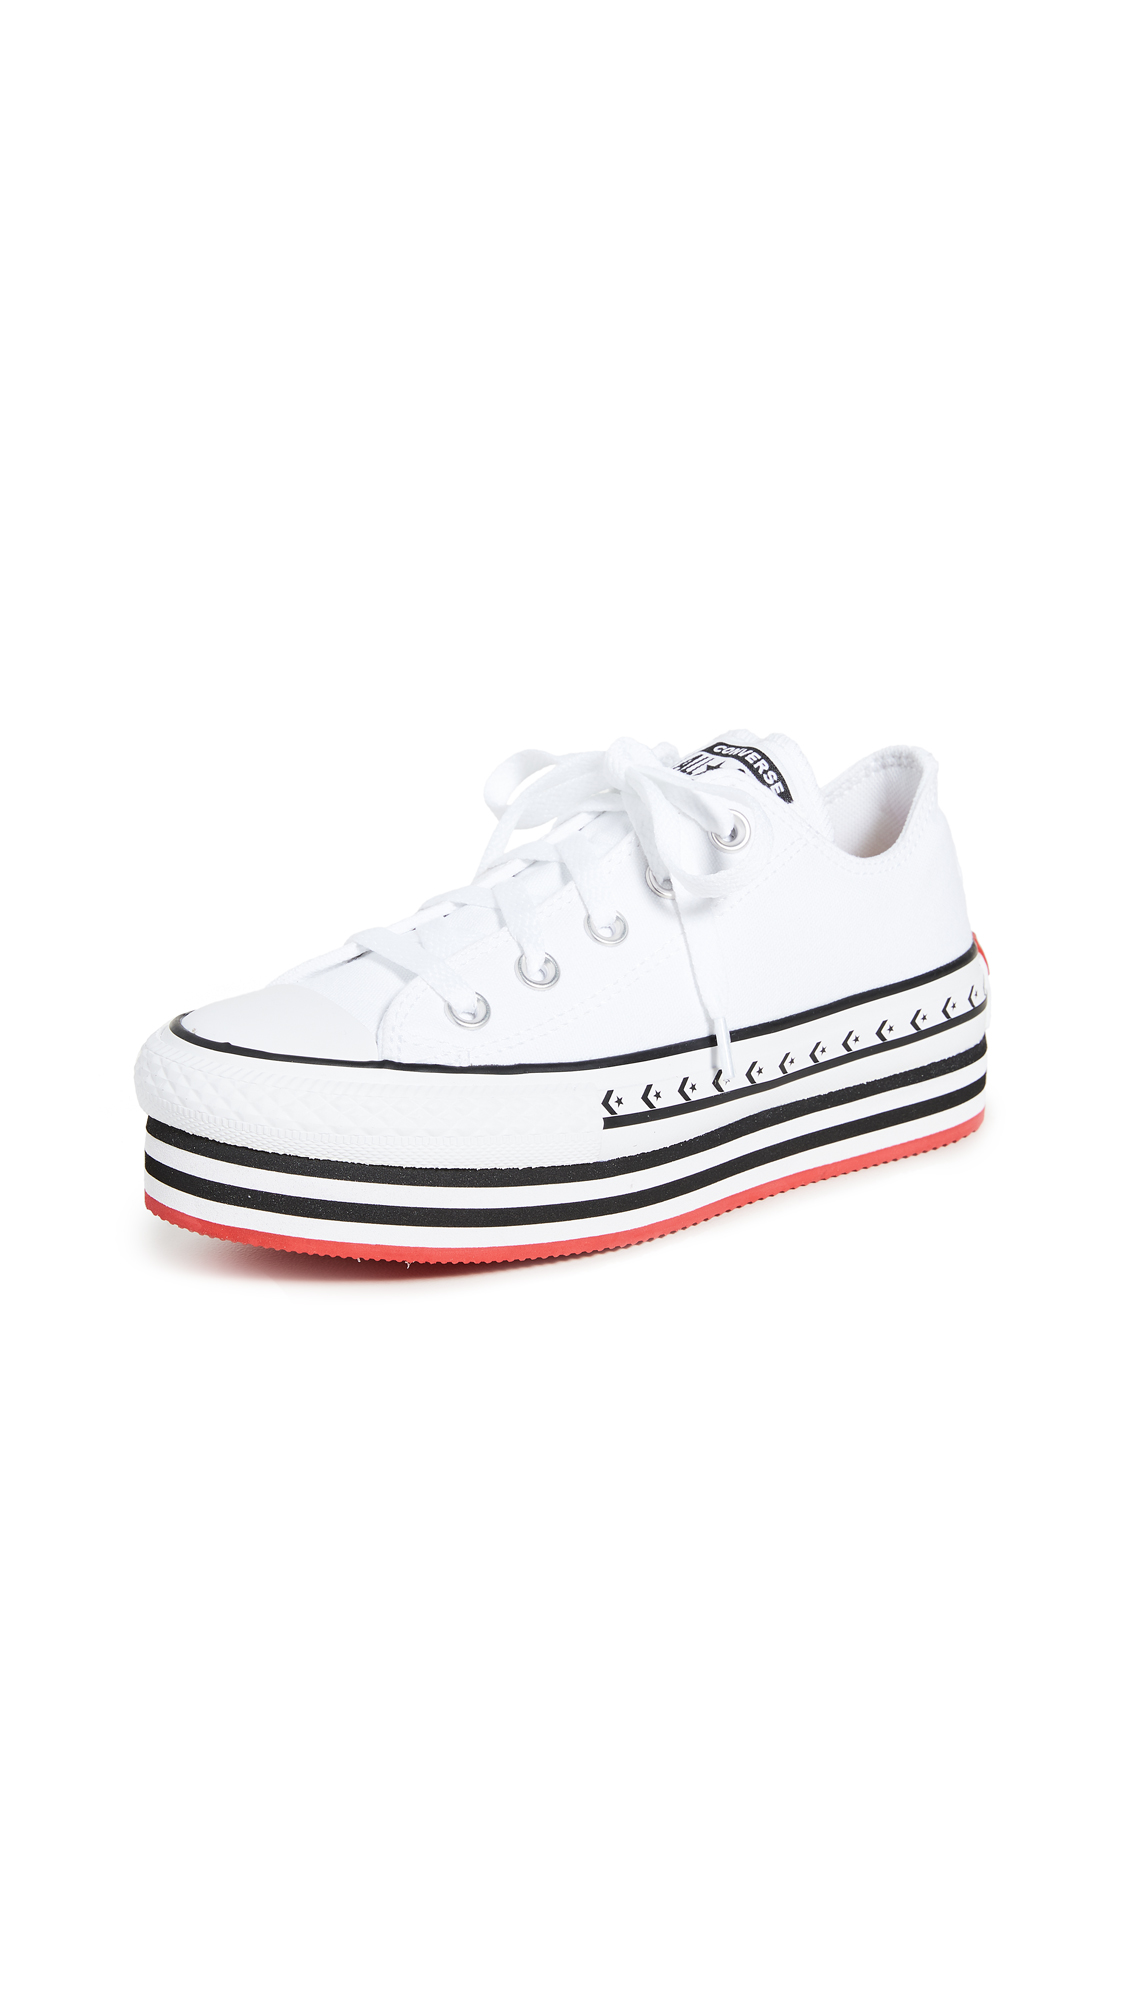 Converse Chuck Taylor All Star Lift Sneakers - 30% Off Sale